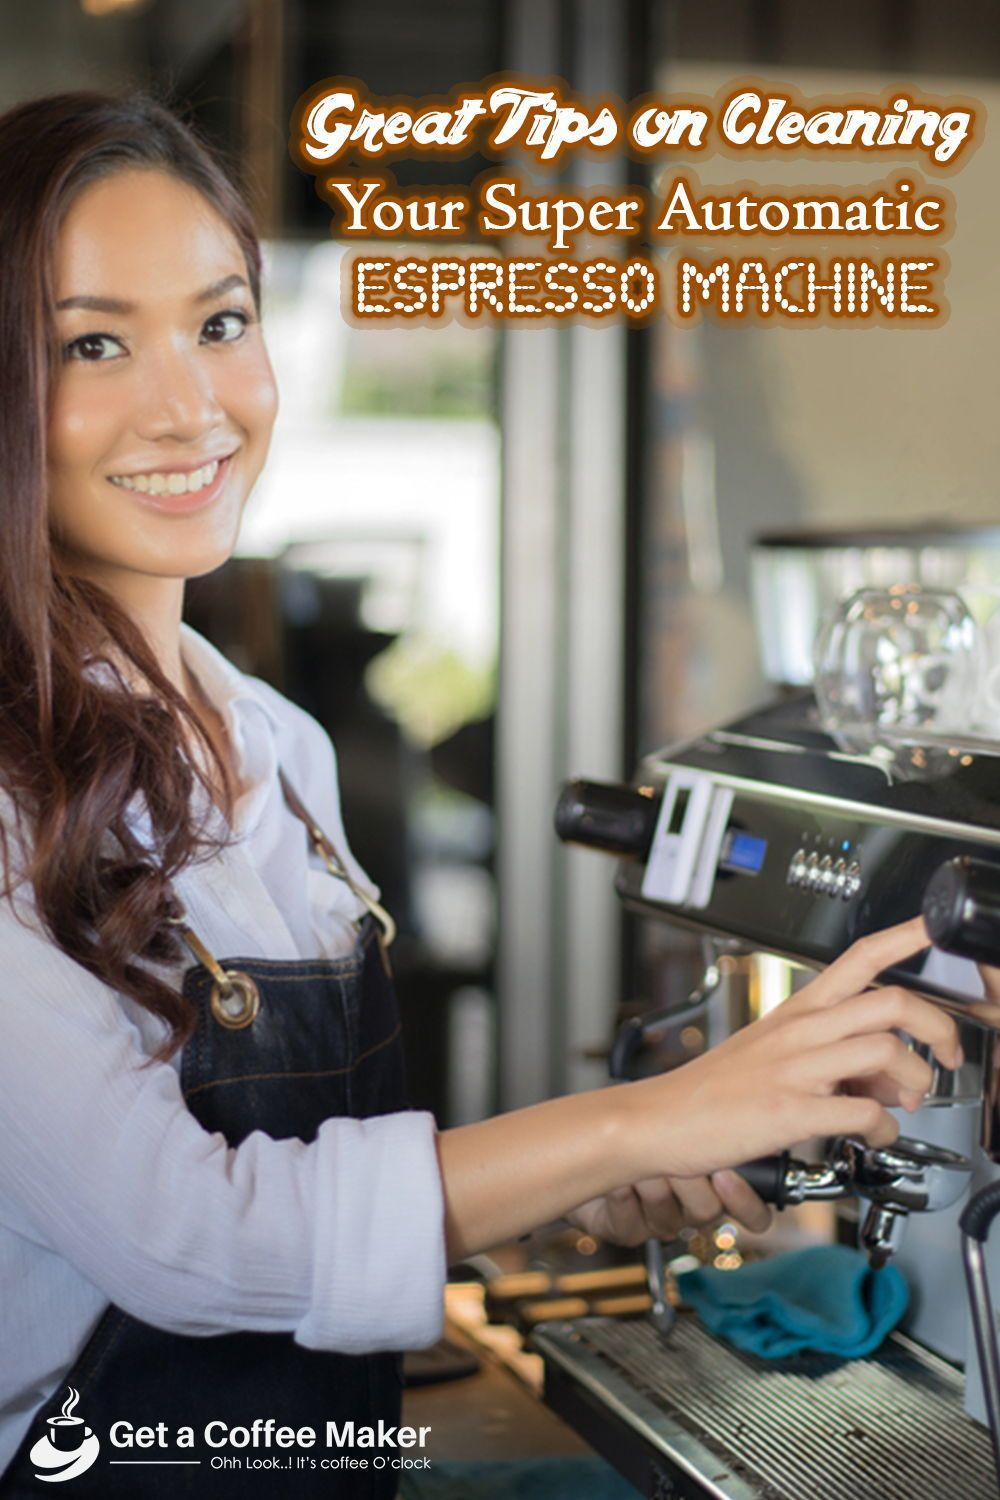 Great Tips on Cleaning Your Espresso Machine #automaticcoffeemachine how to clean espresso machine, how to clean an espresso machine, super automatic coffee machine, best way to clean espresso machine, clean automatic coffee maker, cleaning a bean to cup coffee machine, automatic espresso machine with grinder, best super automatic espresso machine 2019, cleaning an espresso machine, best espresso machine cleaner, espresso machine cleaning #automaticespressomachine